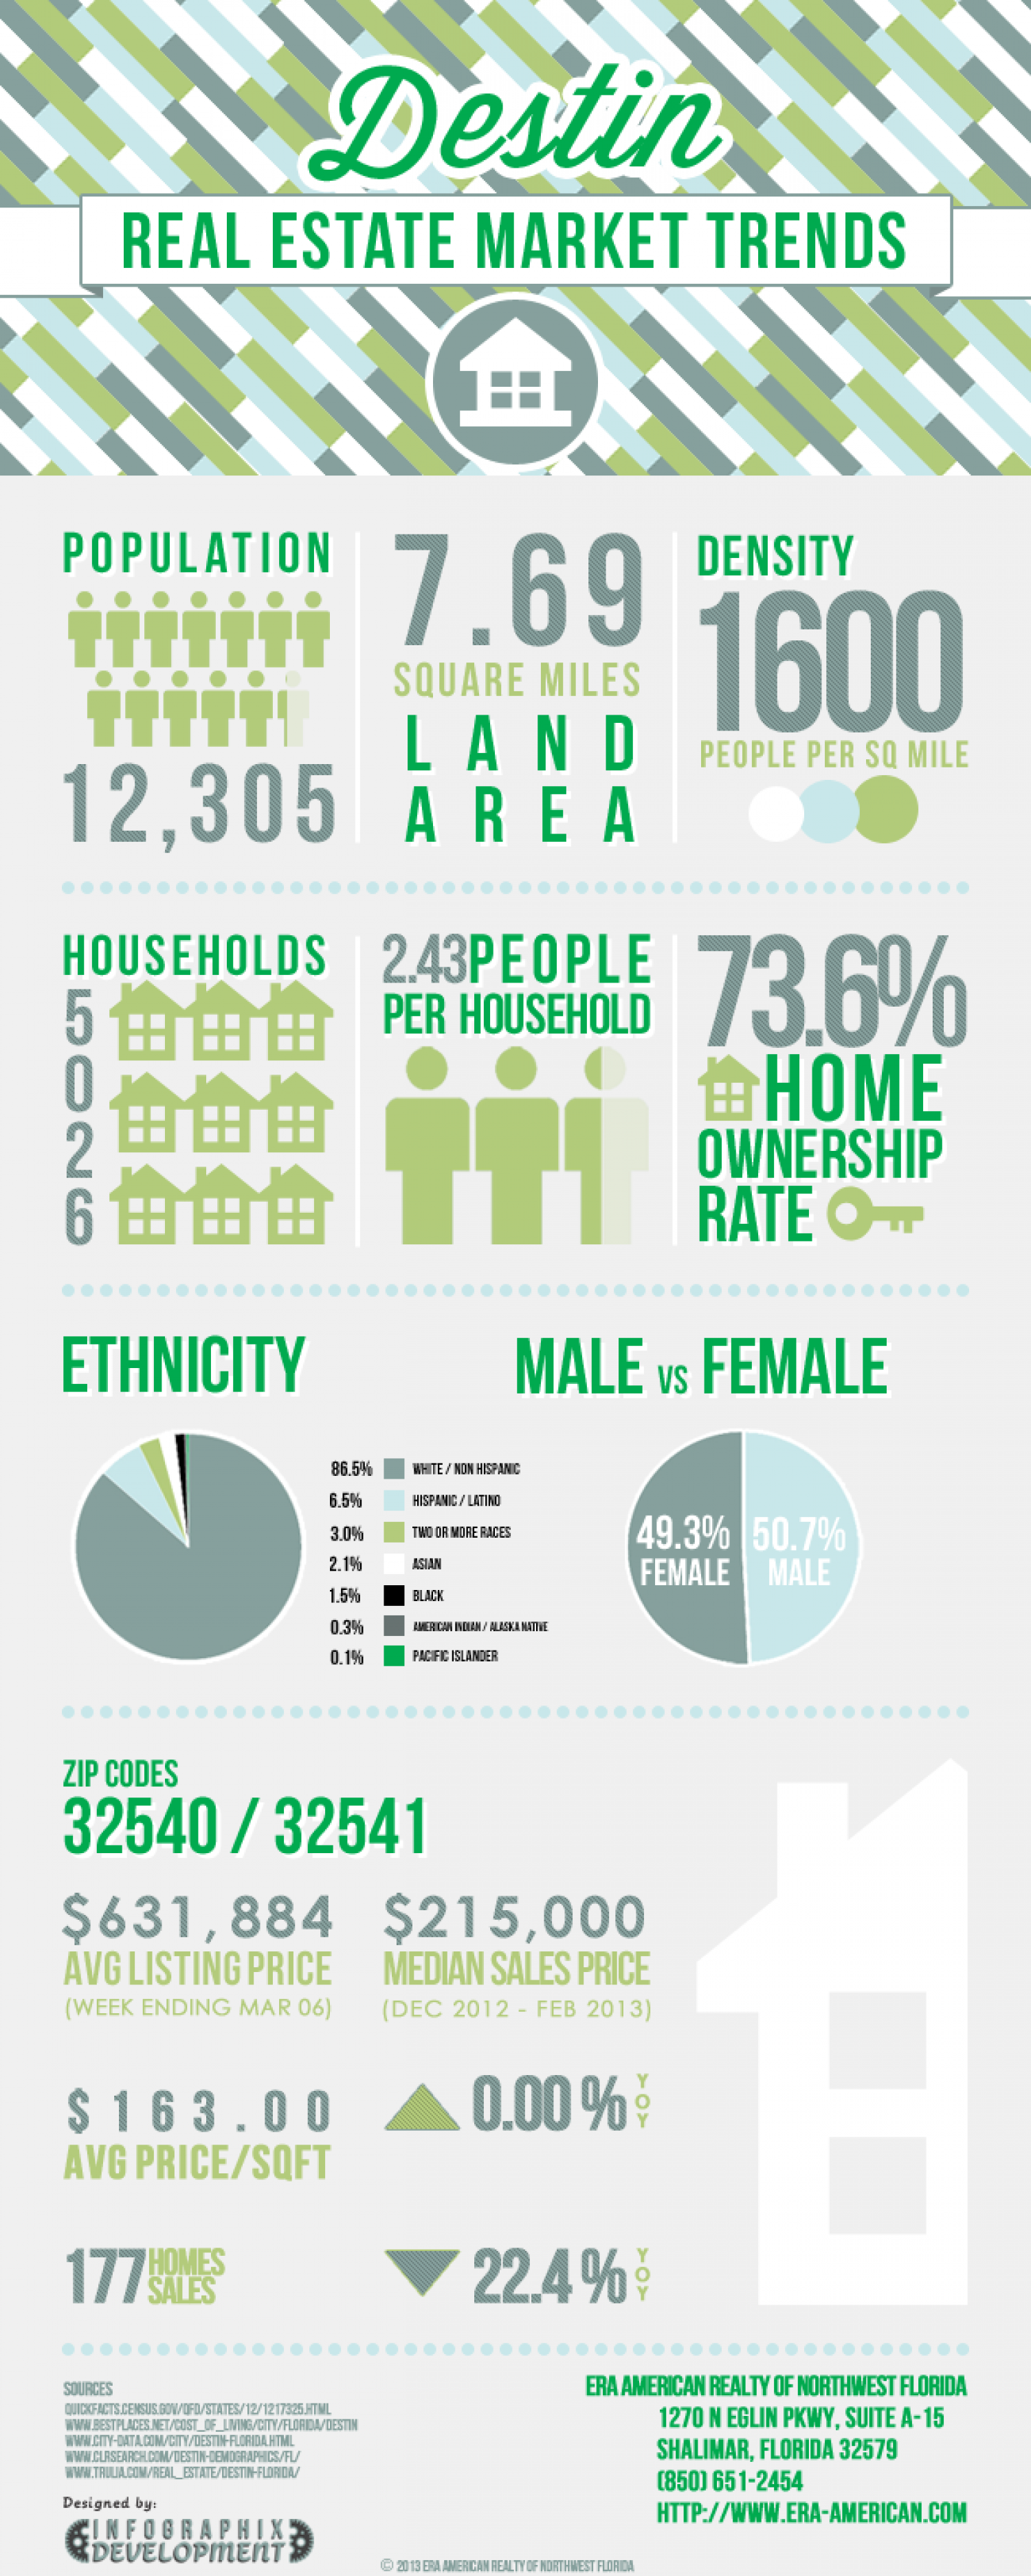 Destin Real Estate Market Trends Infographic